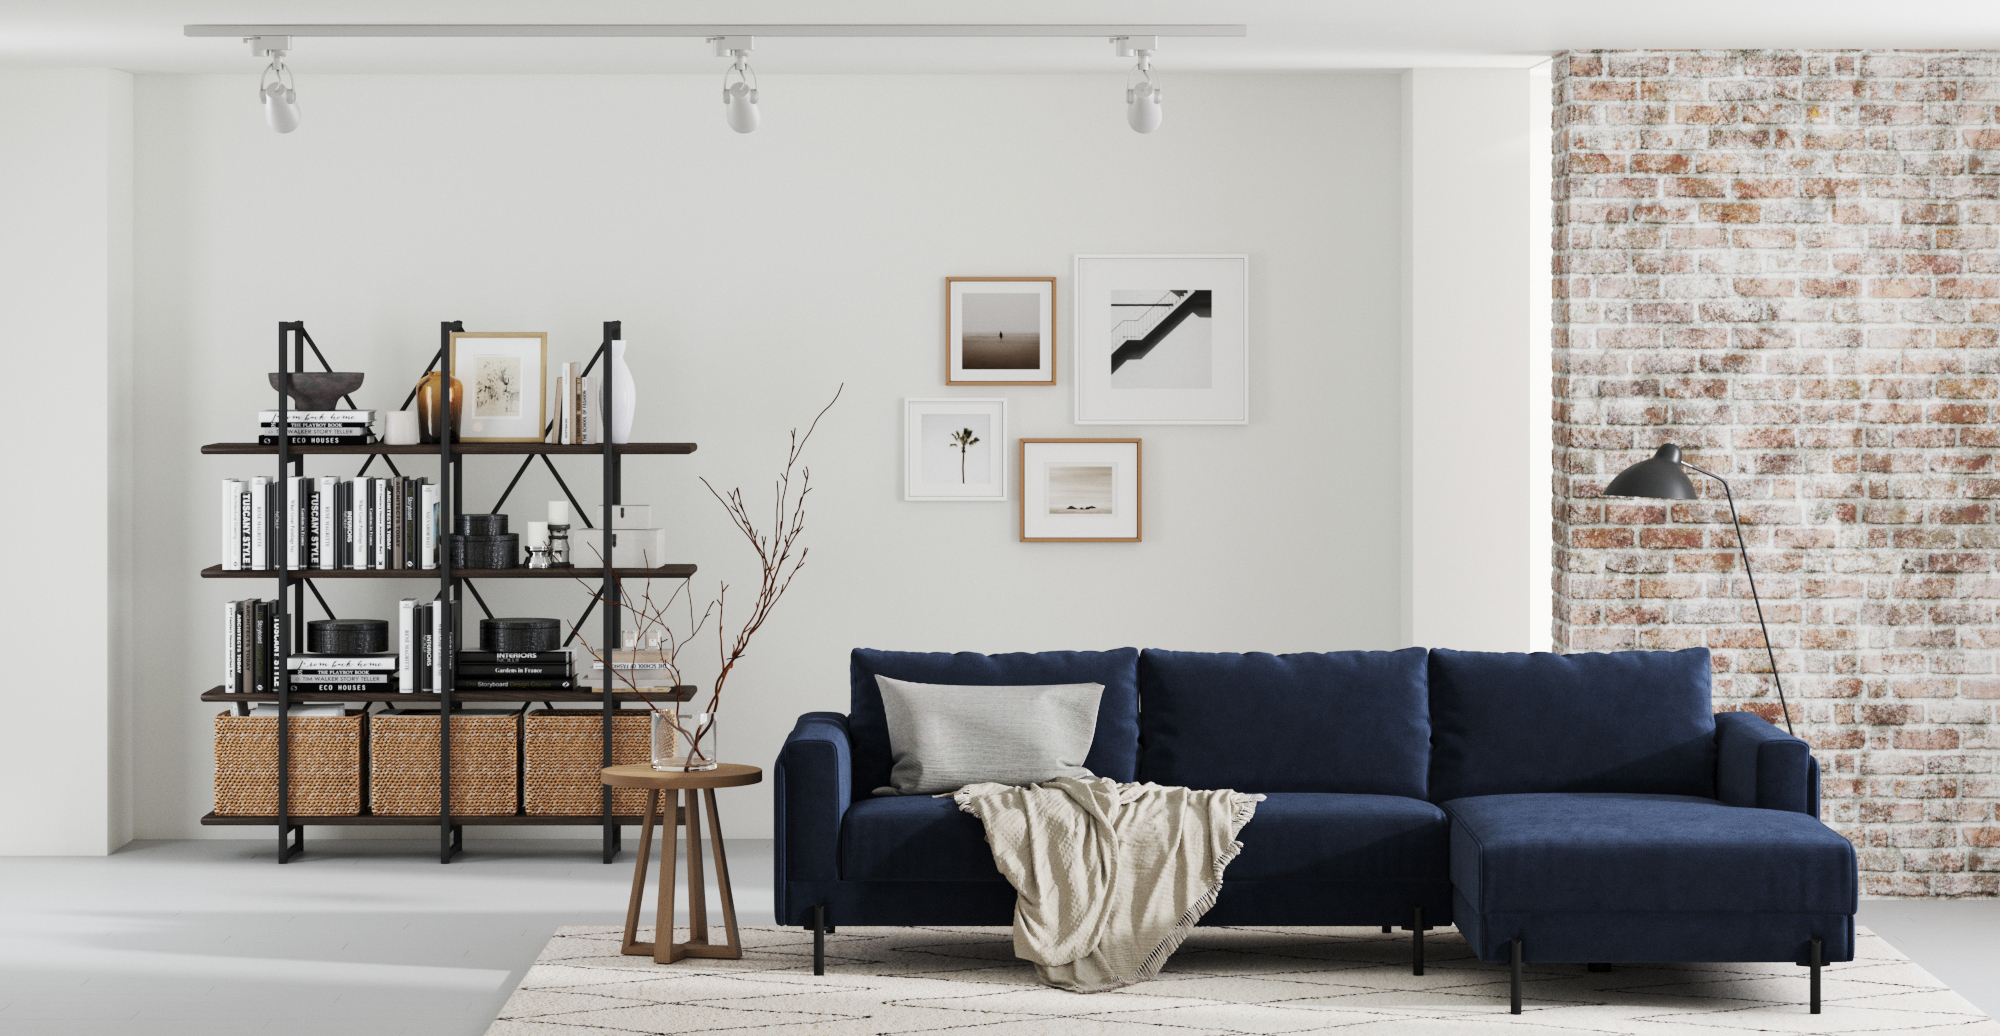 Brosa Rodin Modular Sofa with Chaise styled in mid-century modern living room